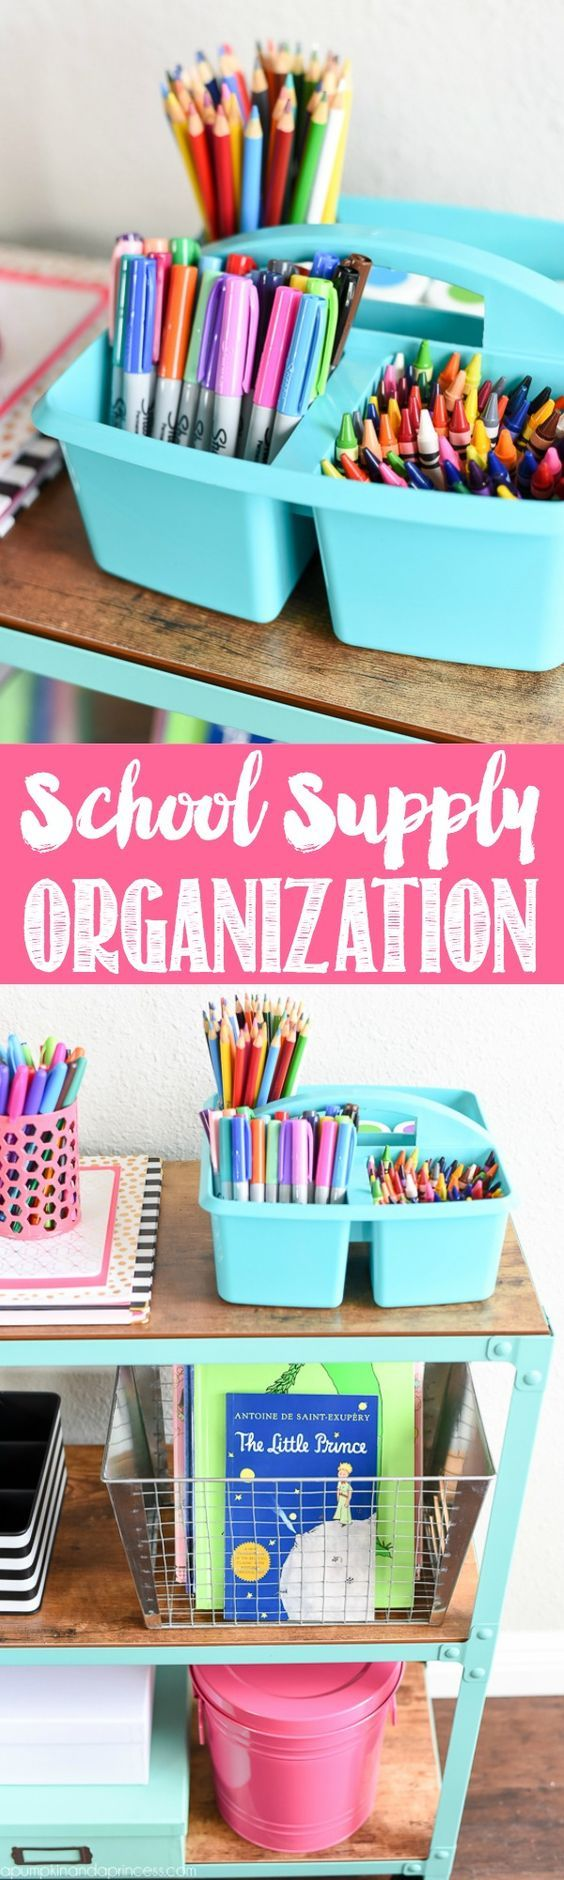 288 Best Images About Back To School On Pinterest